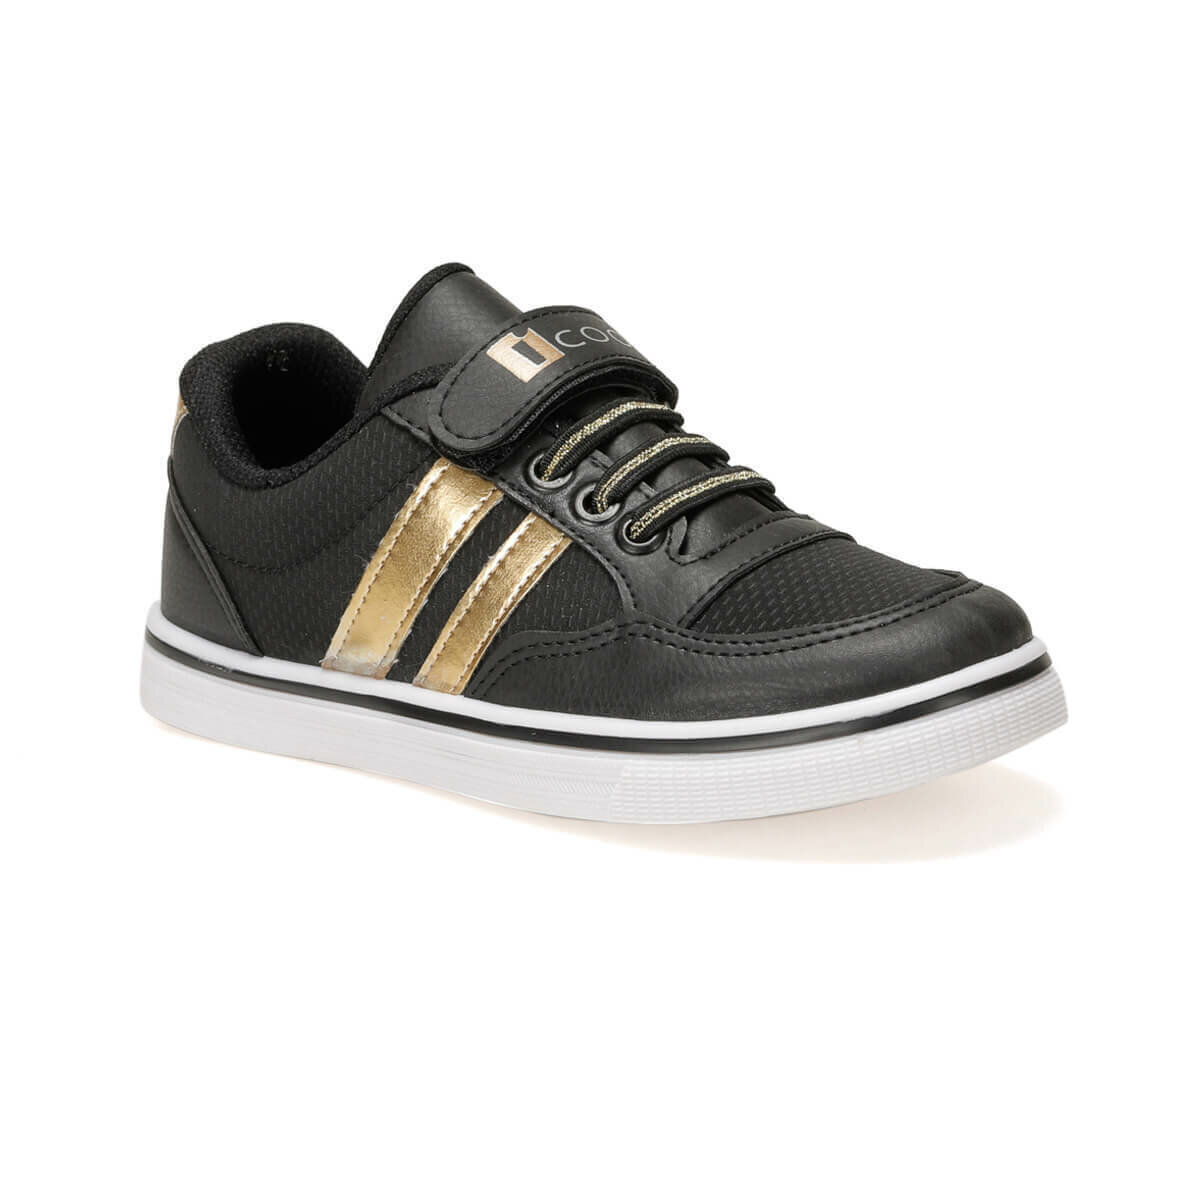 FLO TALU.2 Black Female Child Sneaker Shoes I-Cool